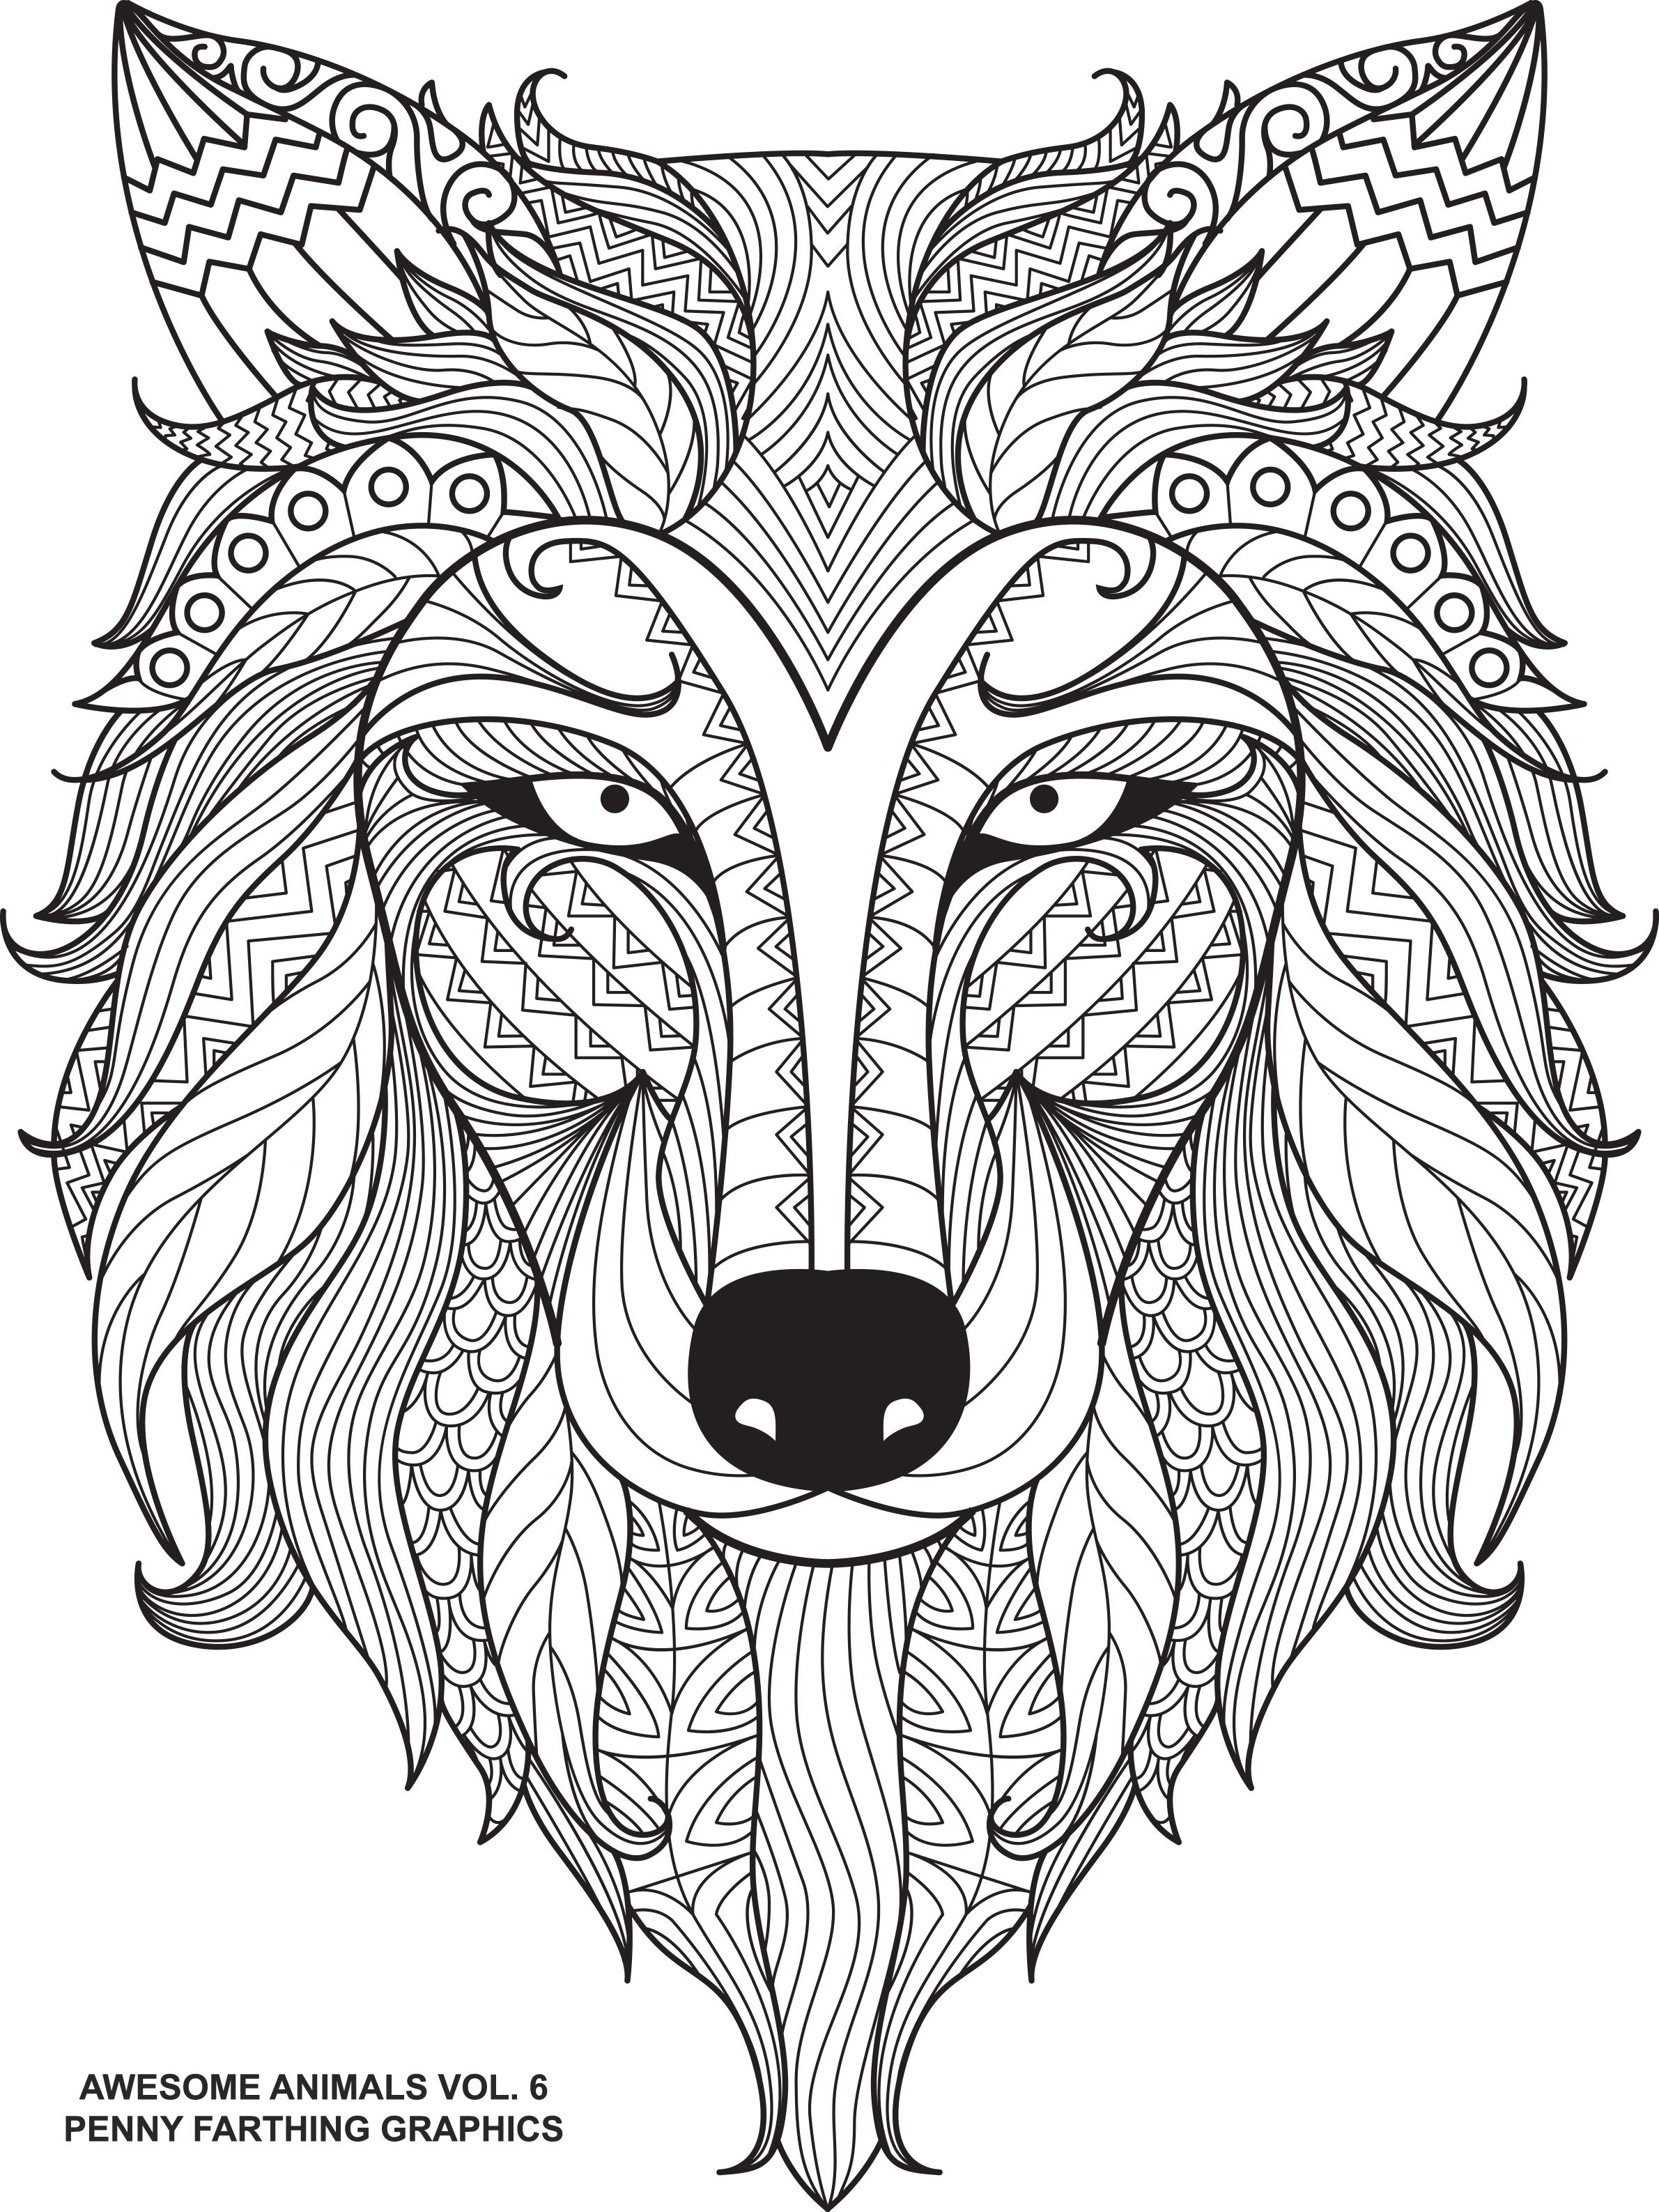 Wolf From Awesome Animals Volume 6 Doodle ColoringColoring SheetsAdult